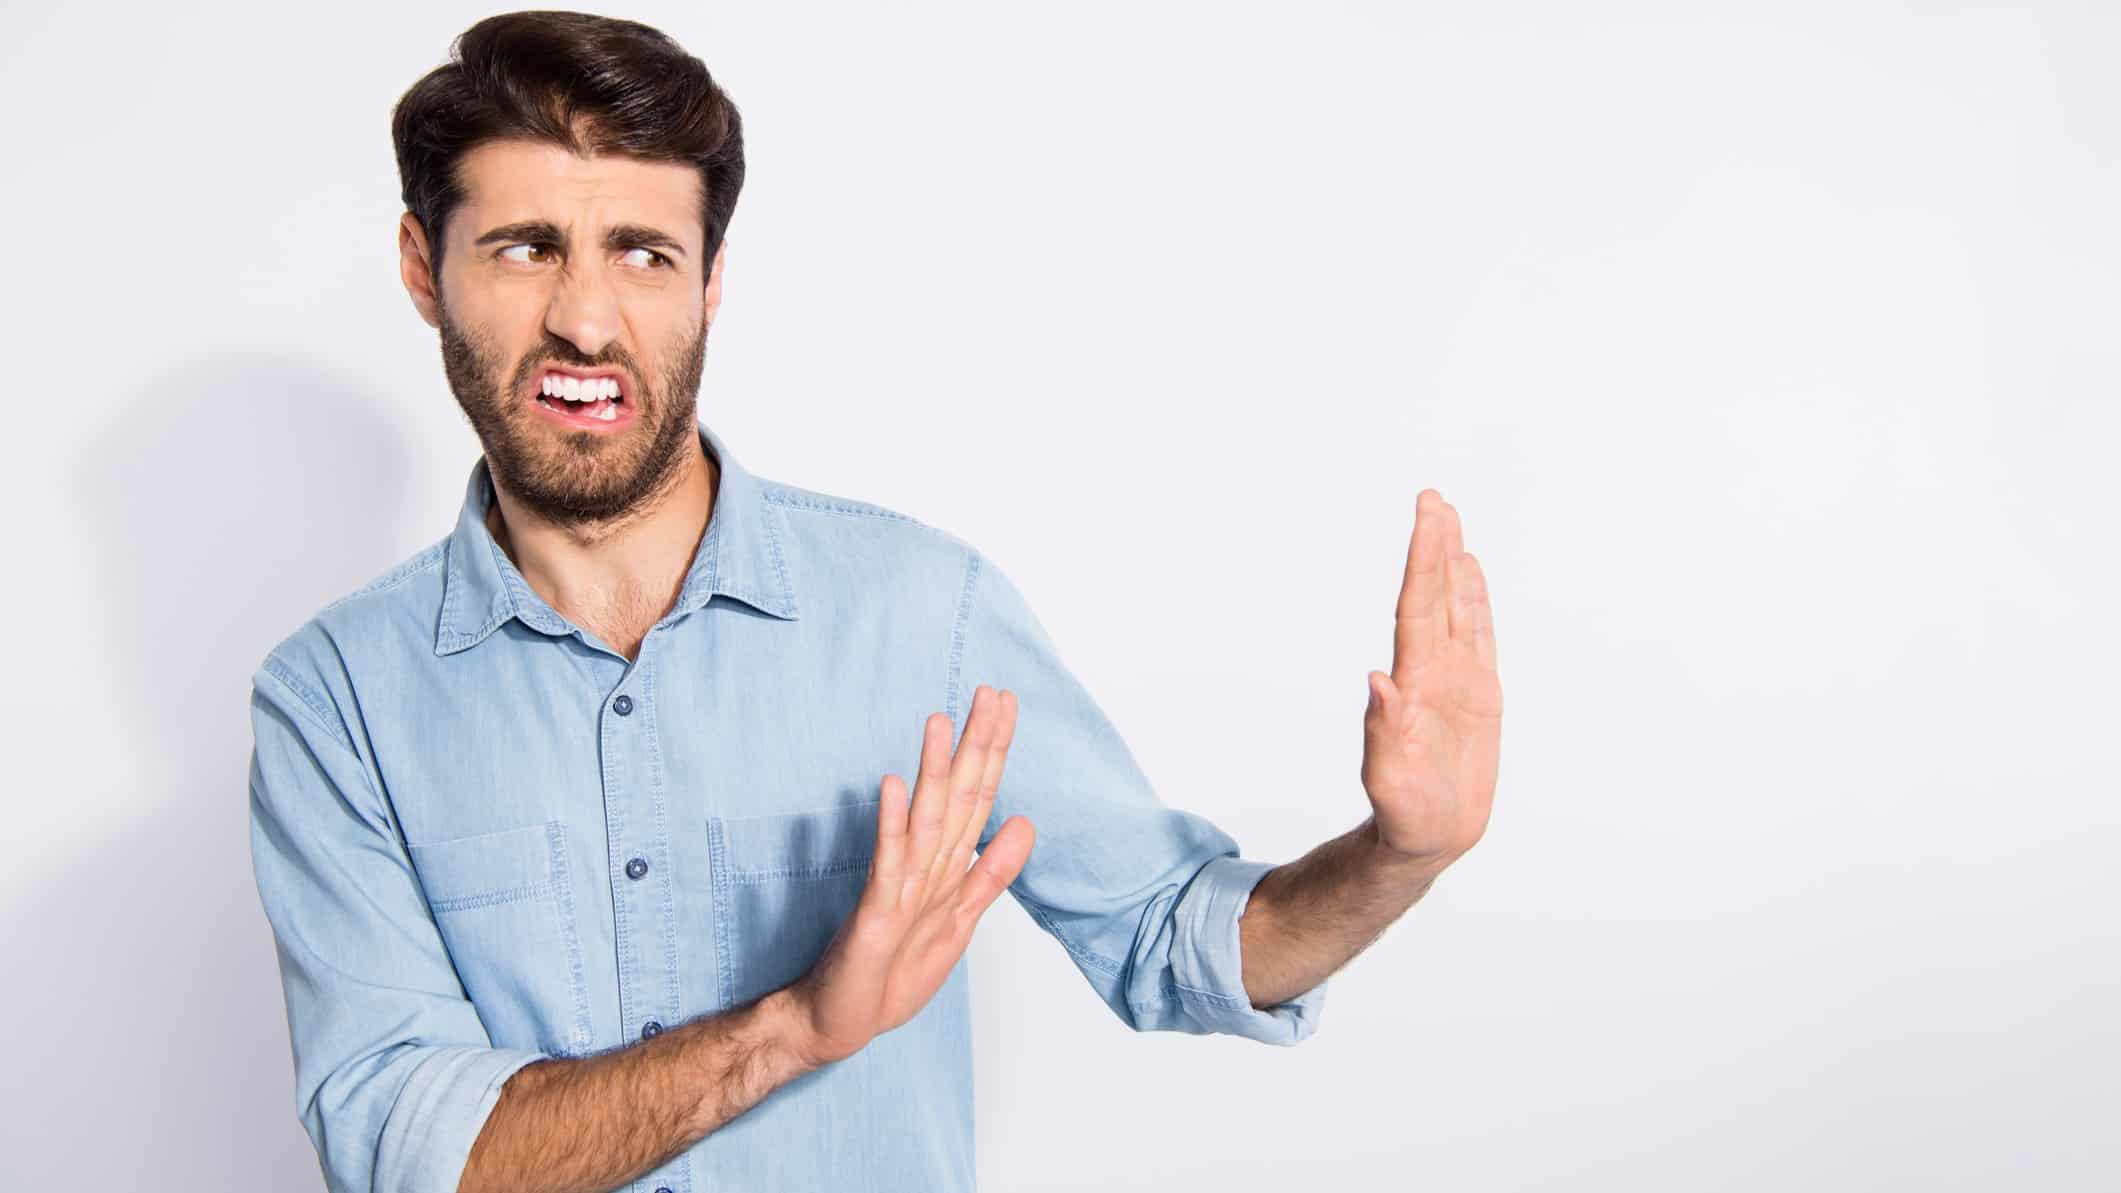 Turning down AGL shares represented by man placing hands up in front of him and frowning